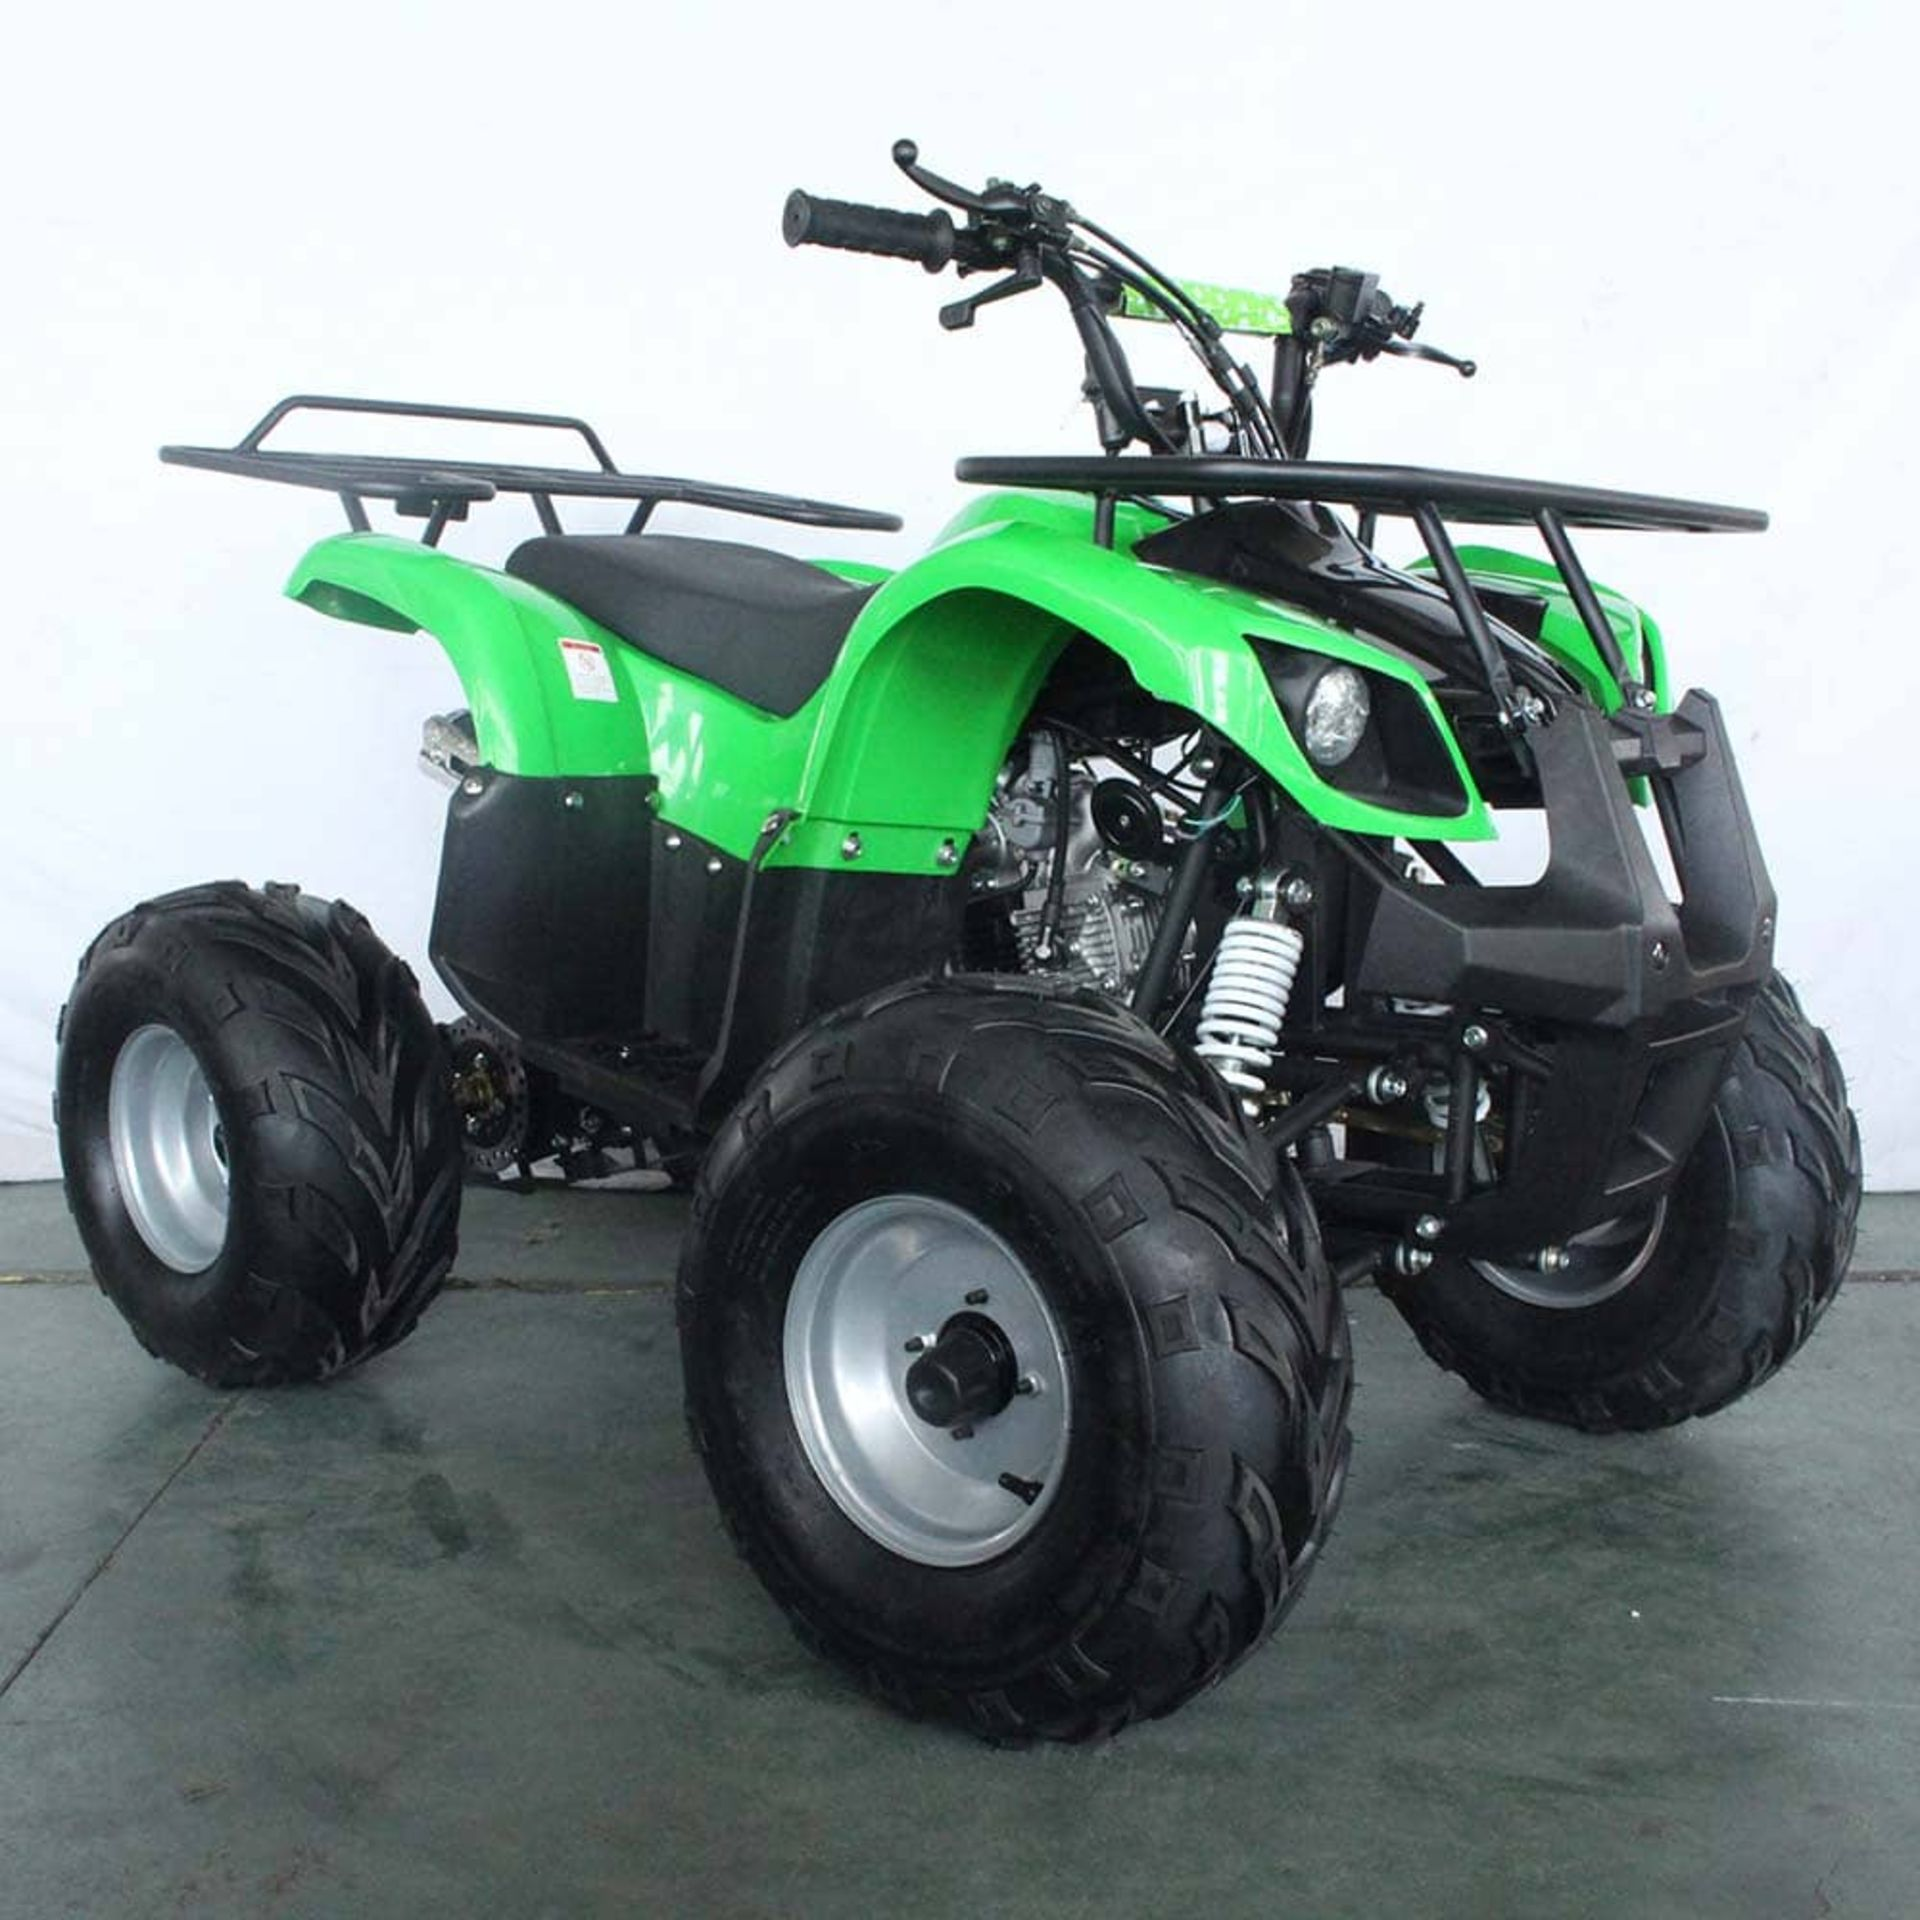 + VAT Brand New 125cc Condor Quad Bike - Four Stroke - Single Cylinder - Front Drum Brakes & Rear - Image 7 of 9